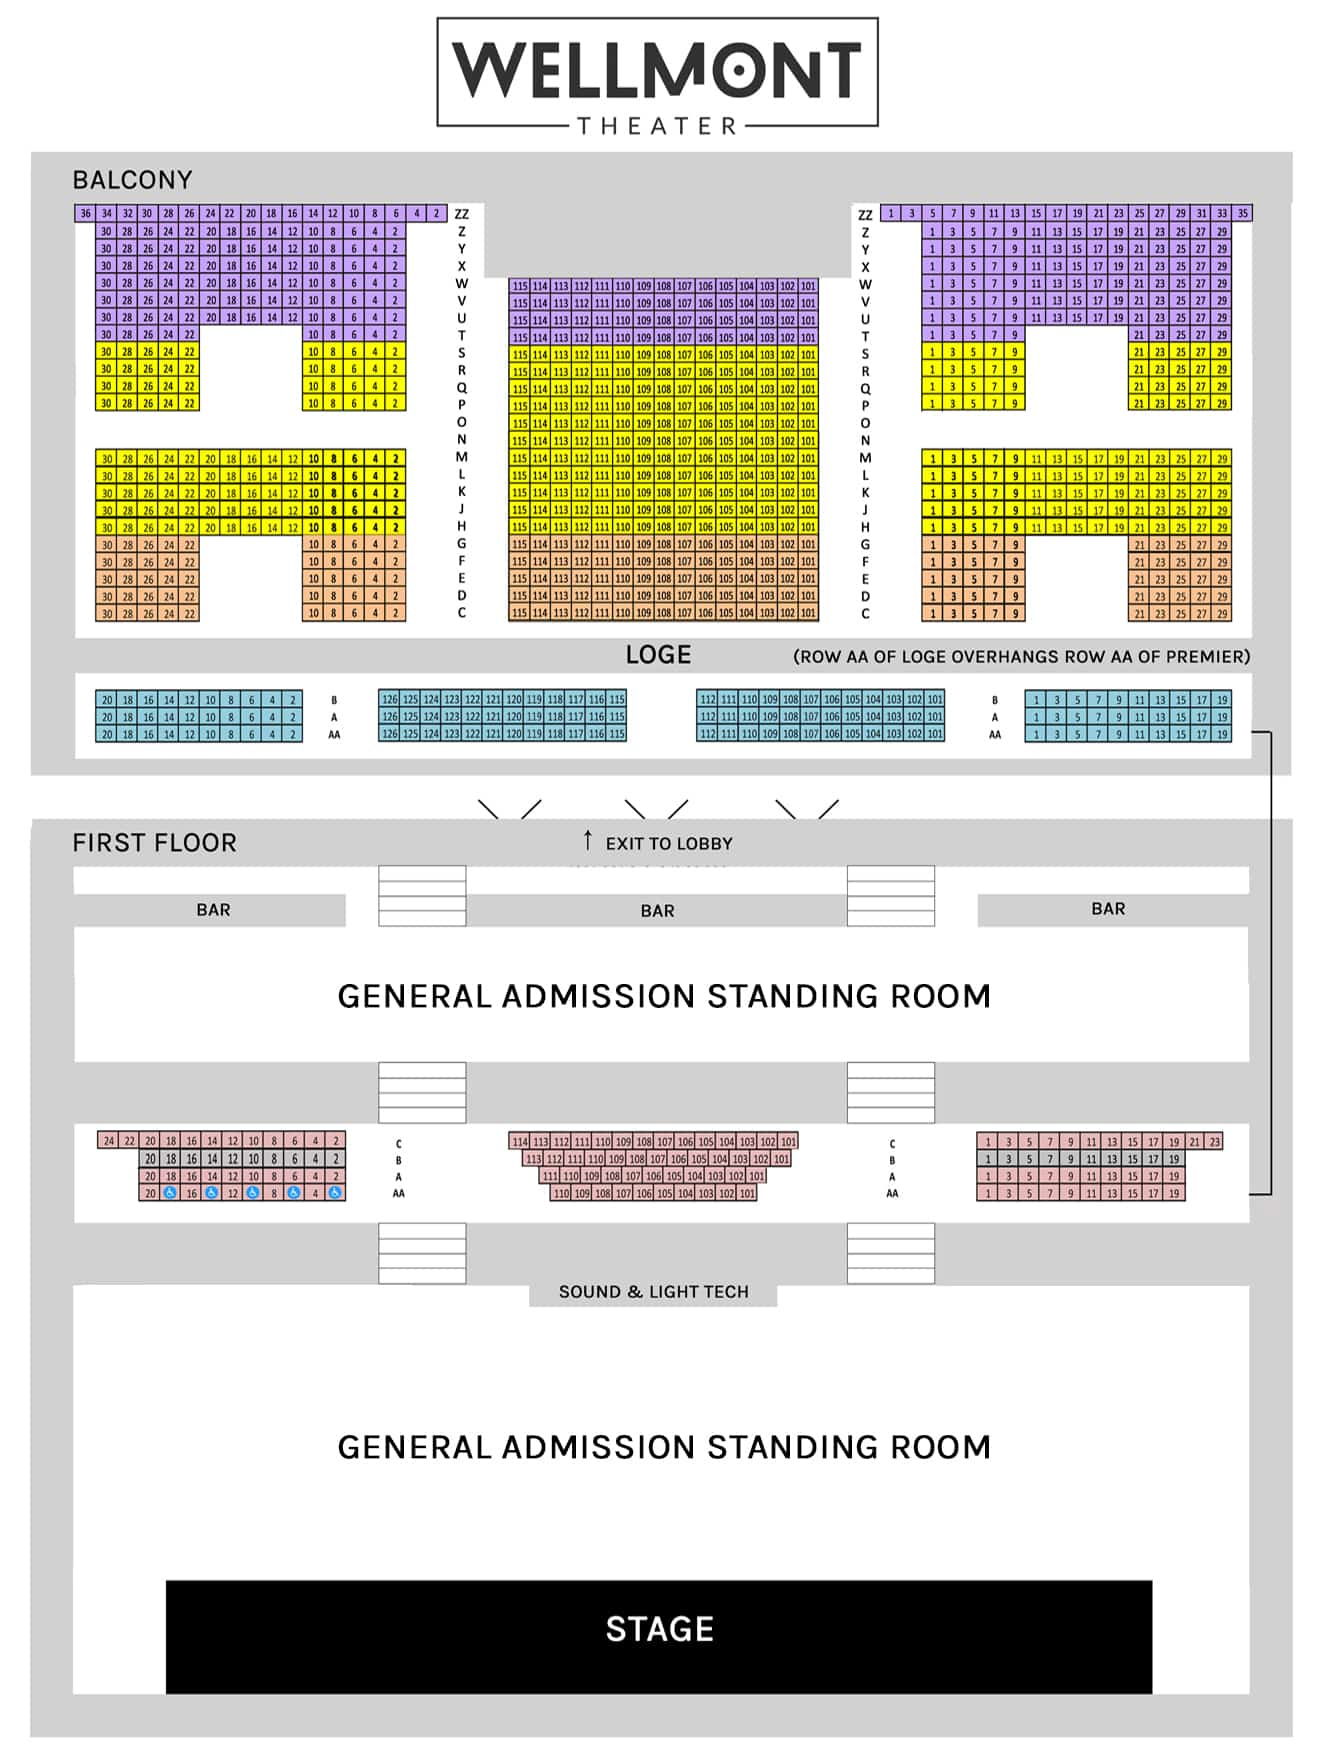 Wellmont General Admission Seating Chart